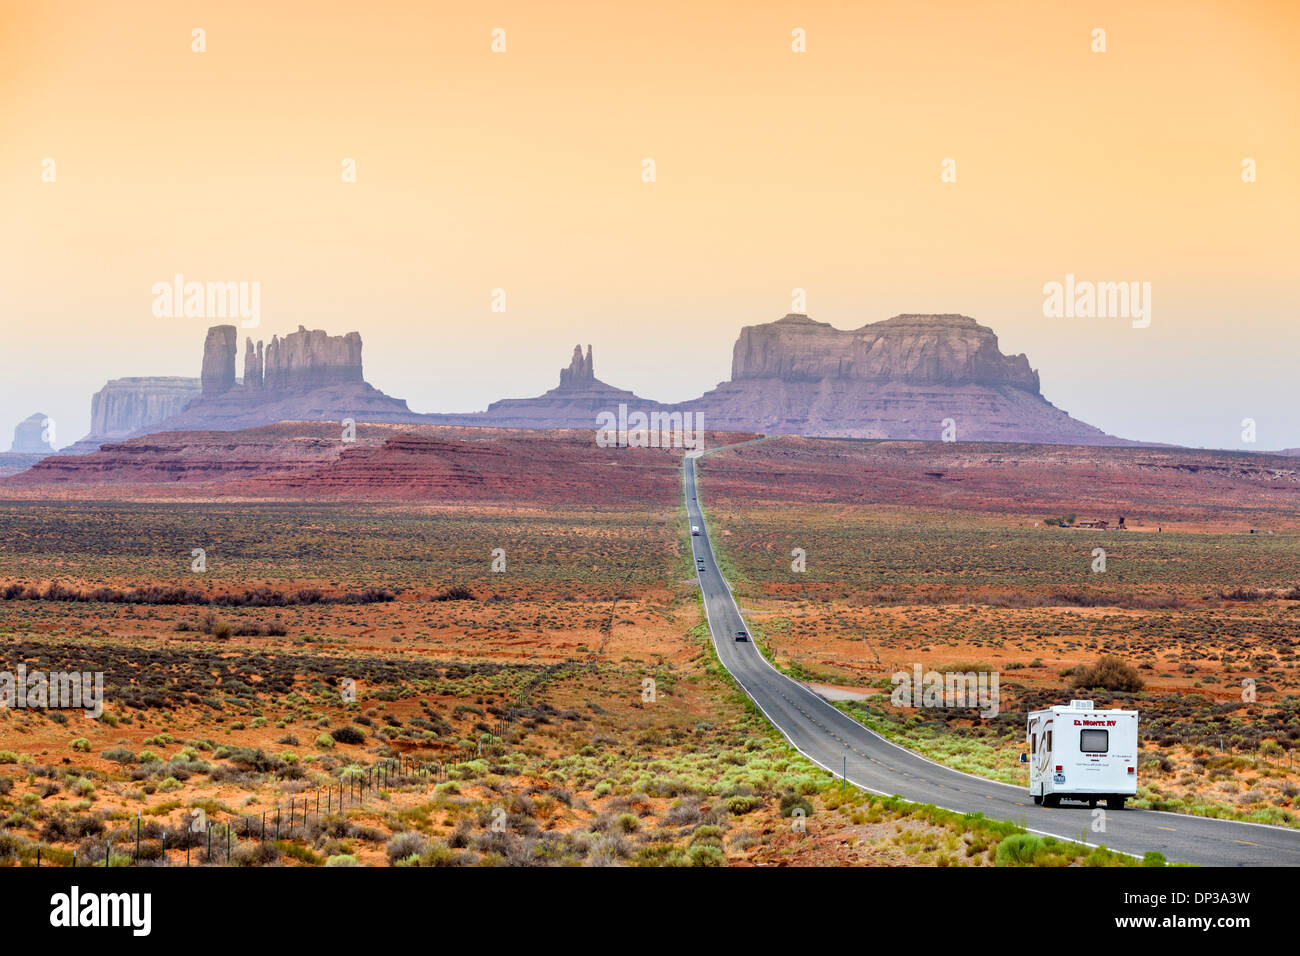 USA Travel. Camper van (Motorhome) on US 163 looking south towards Monument Valley, Utah, United States of America. Stock Photo